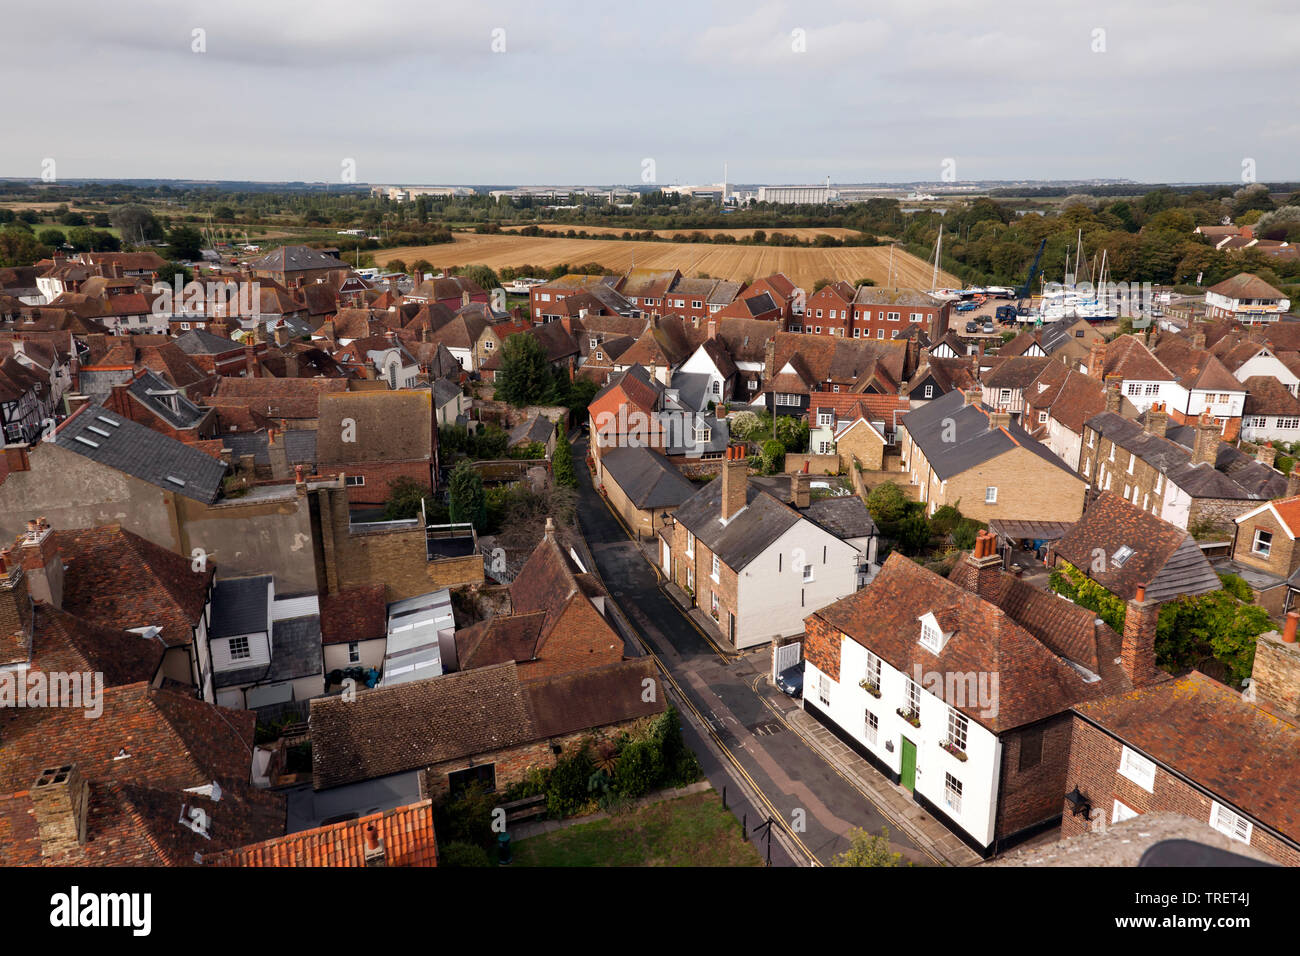 Wide-Angle, aerial view looking Towards the  Discovery Park,  Taken from the top of the tower of St Peters Church, Sandwich, Kent - Stock Image